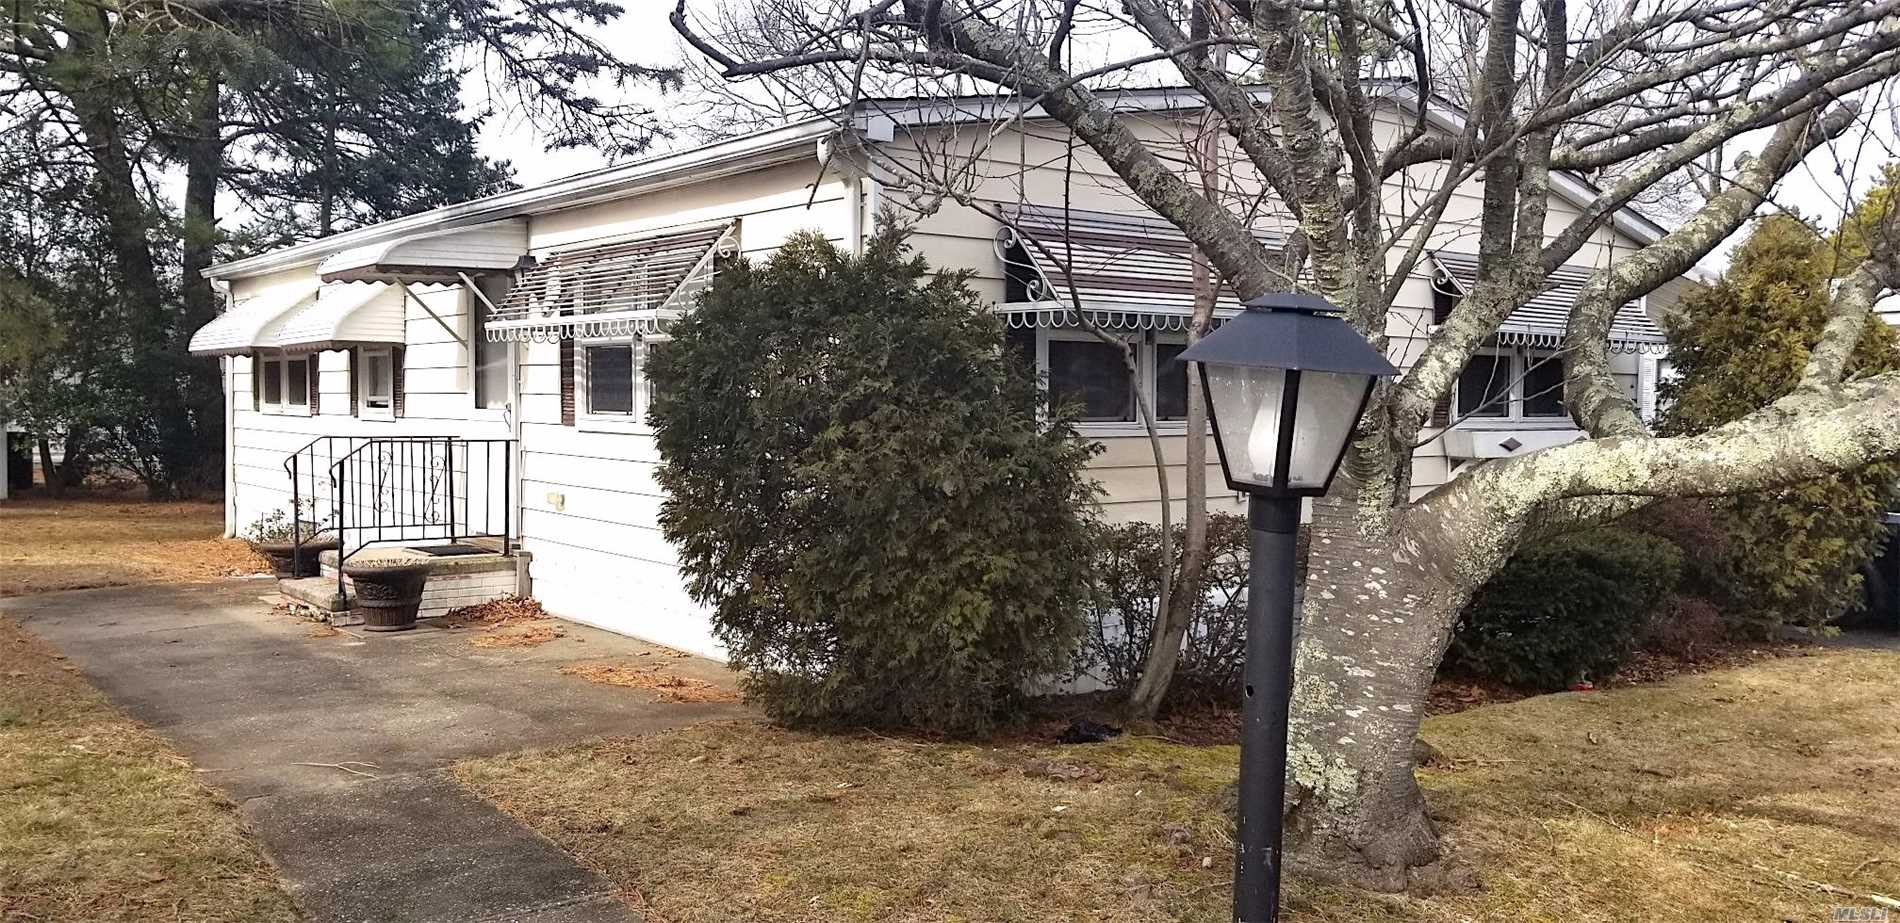 55+ Community, Monthly Common Charges Plus Taxes $980.00 Can Be Reduced With Senior Program. Skylight In Kitchen, Hardwood Floors